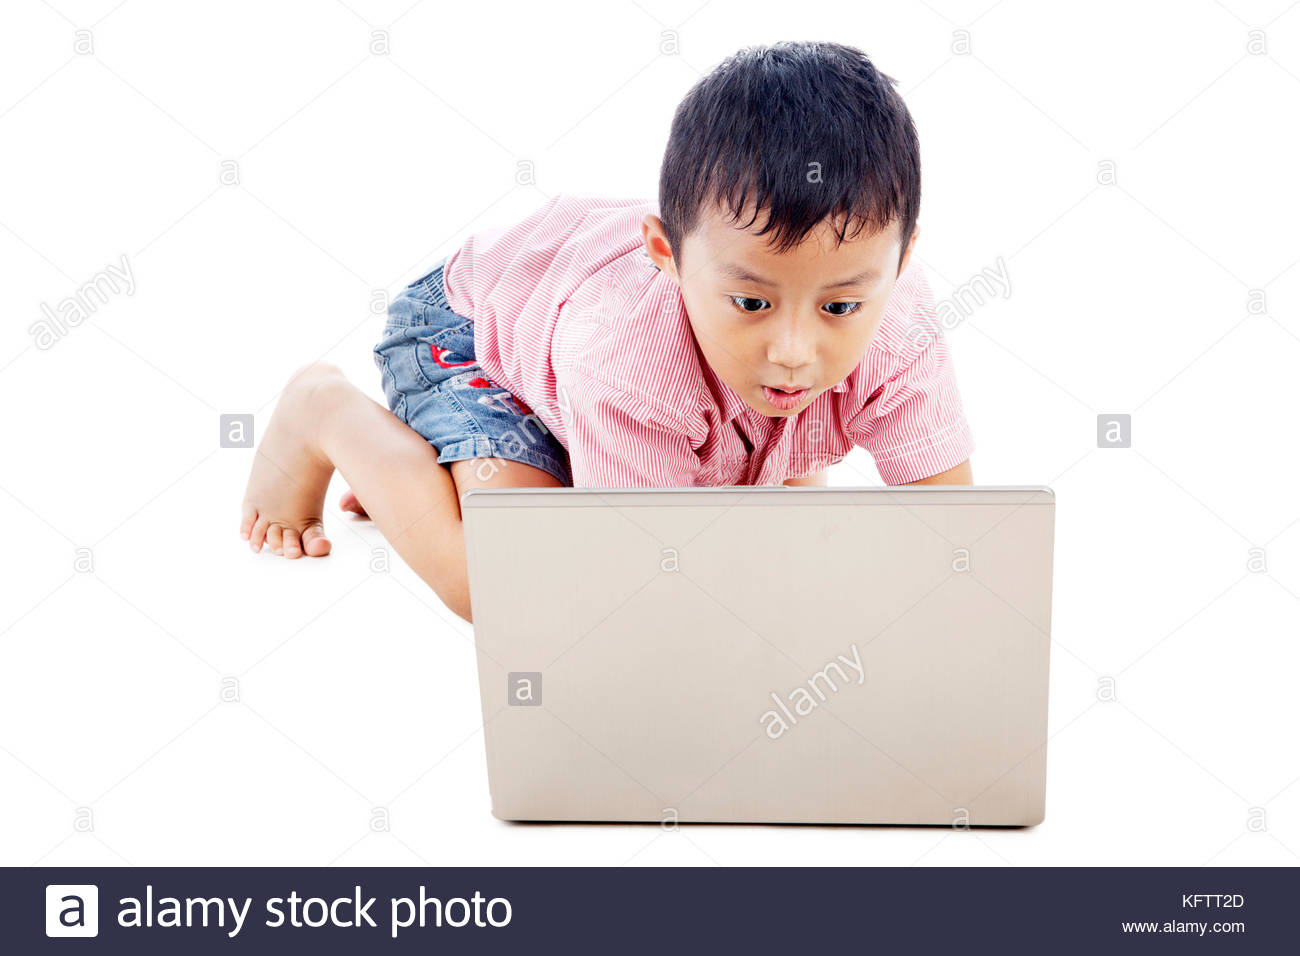 Cute asian boy using laptop computer seriously. shot in studio - Stock Image